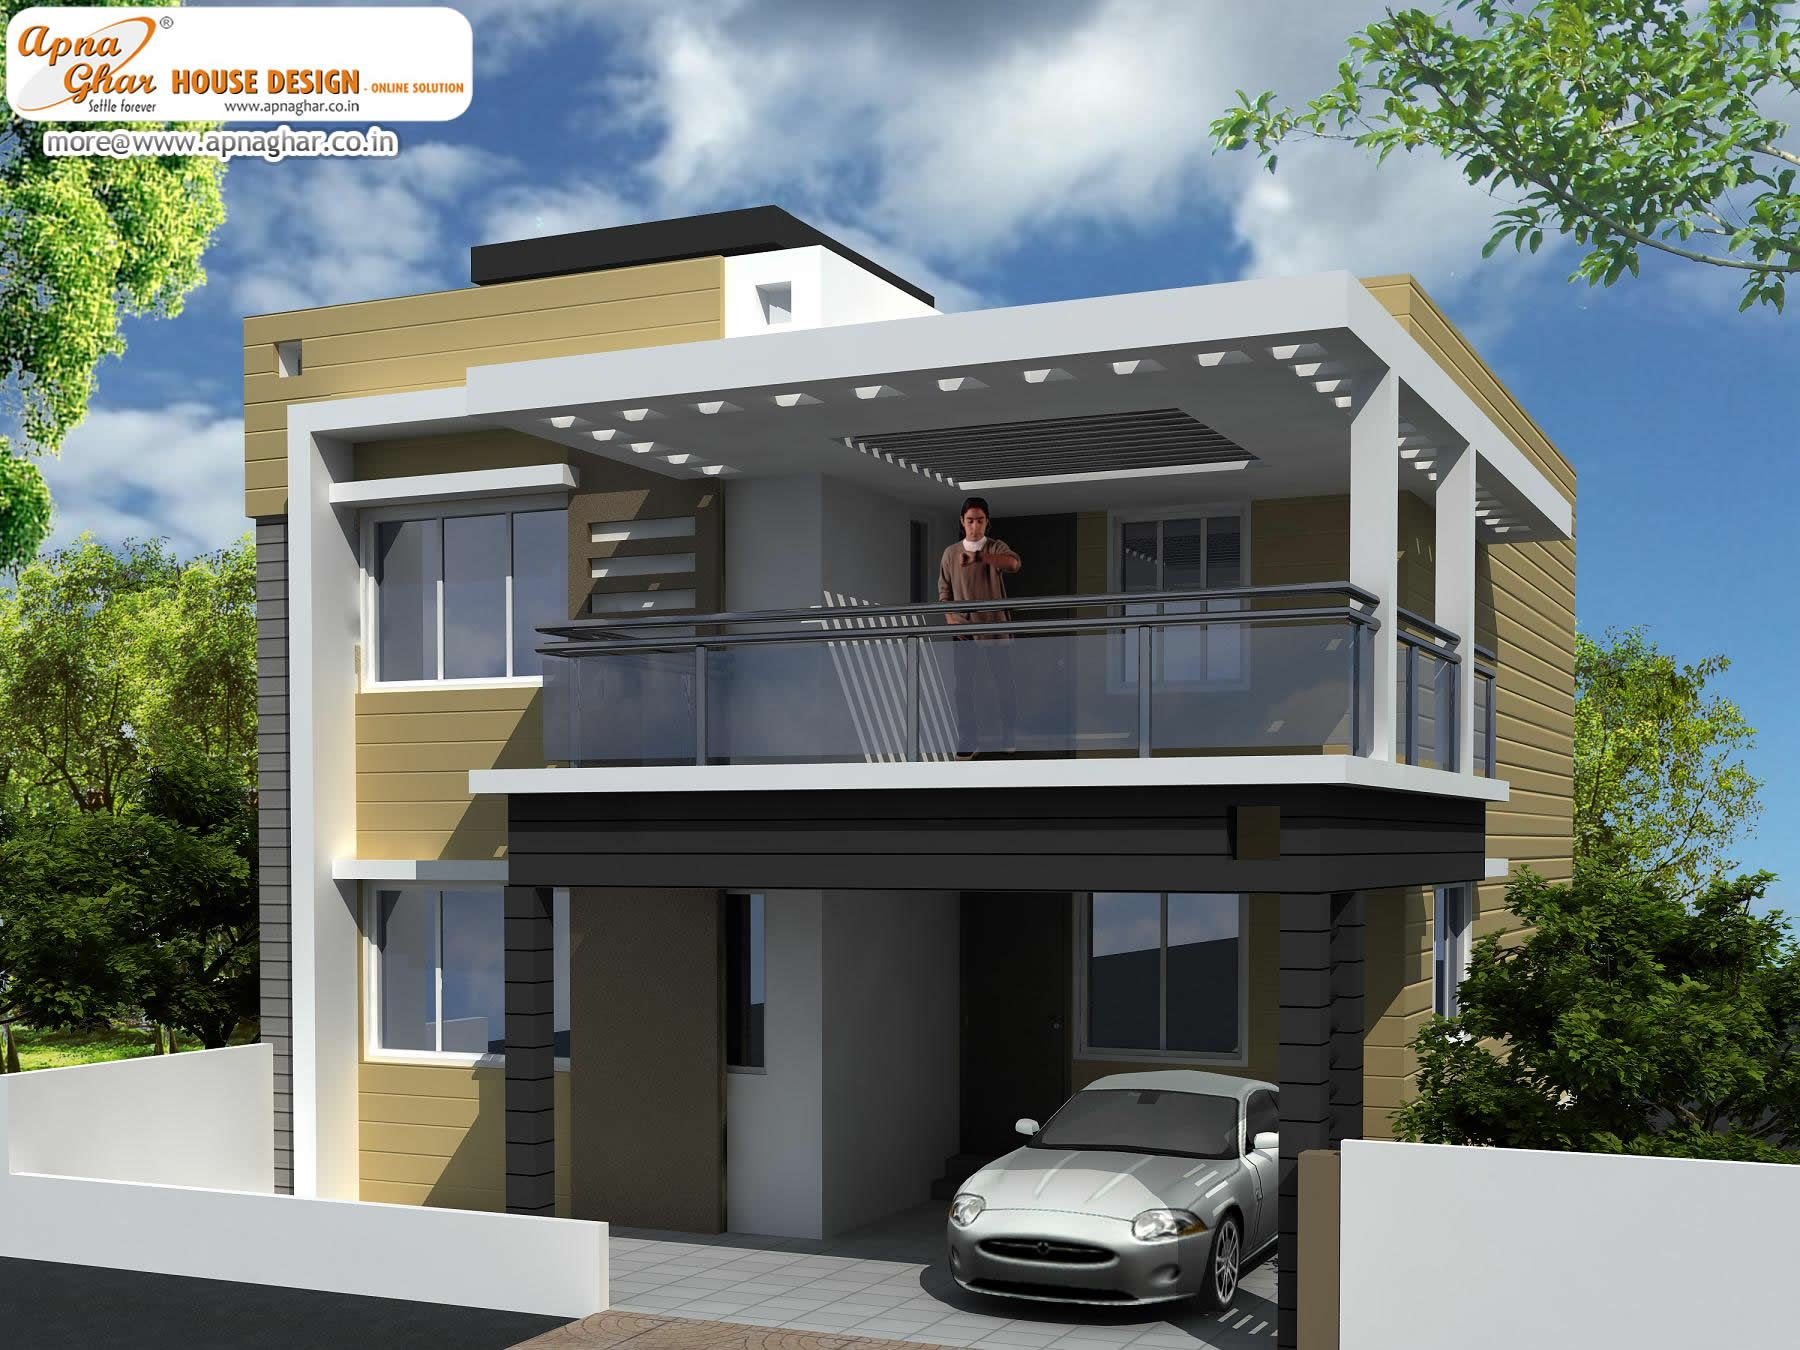 3d elevation elevation pinterest architecture exterior and click on this link http www apnaghar co in pre design house plan ag page 63 aspx to view free floor plans naksha and other specifications for this